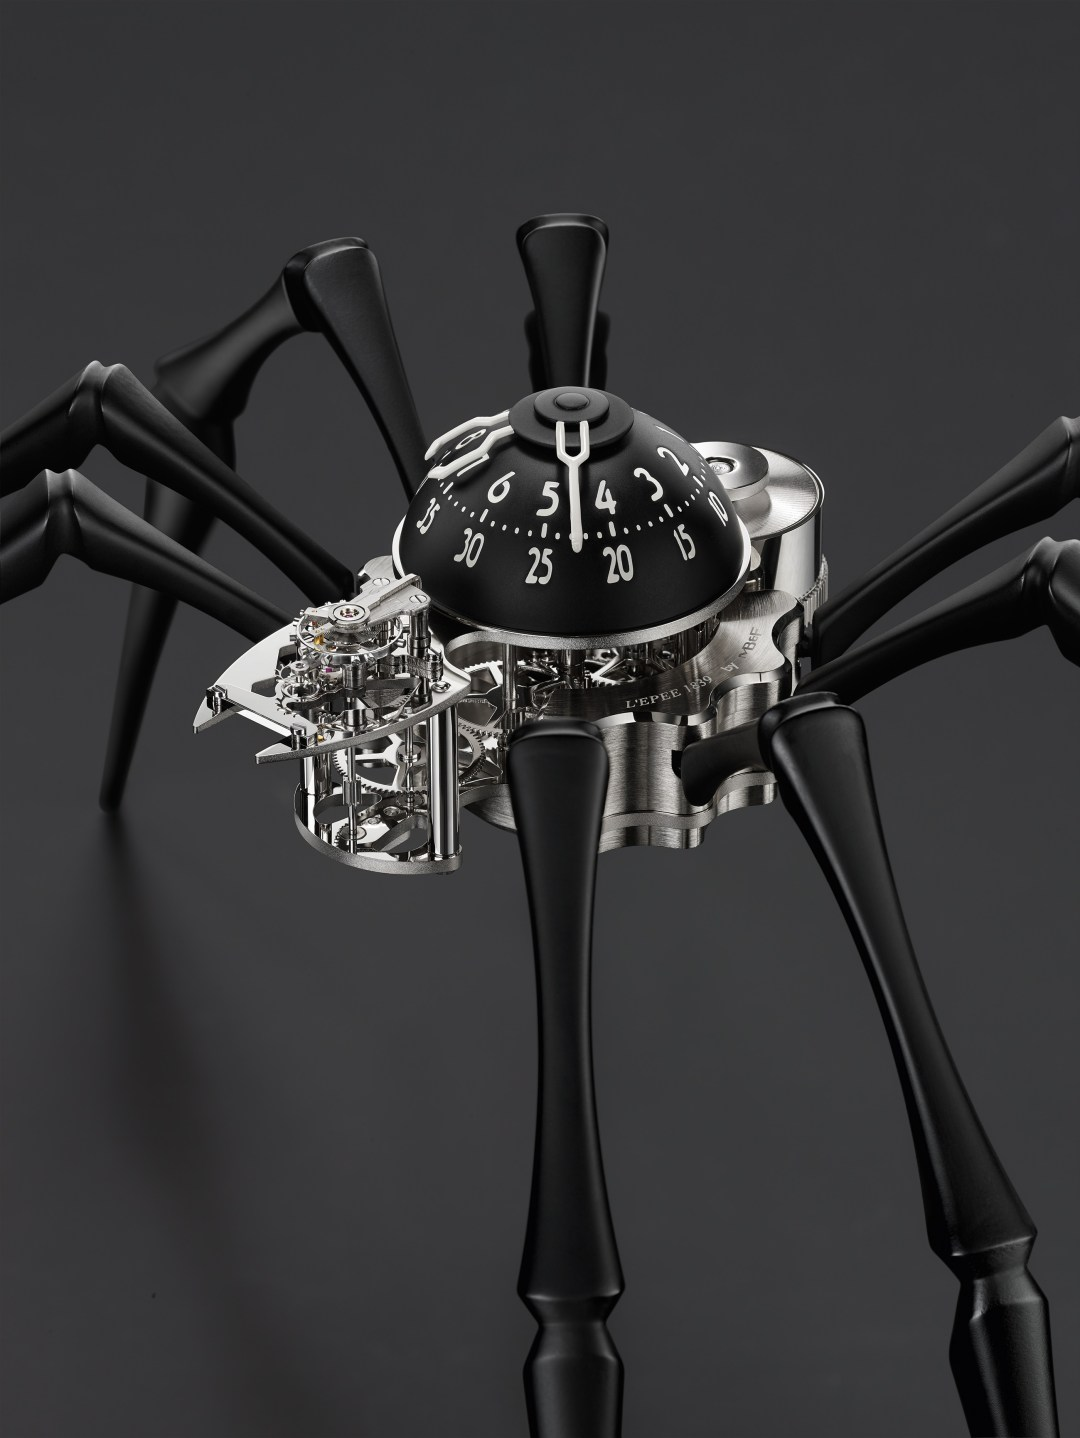 Arachnophobia_Black_CloseUp_Hres_CMYK copy